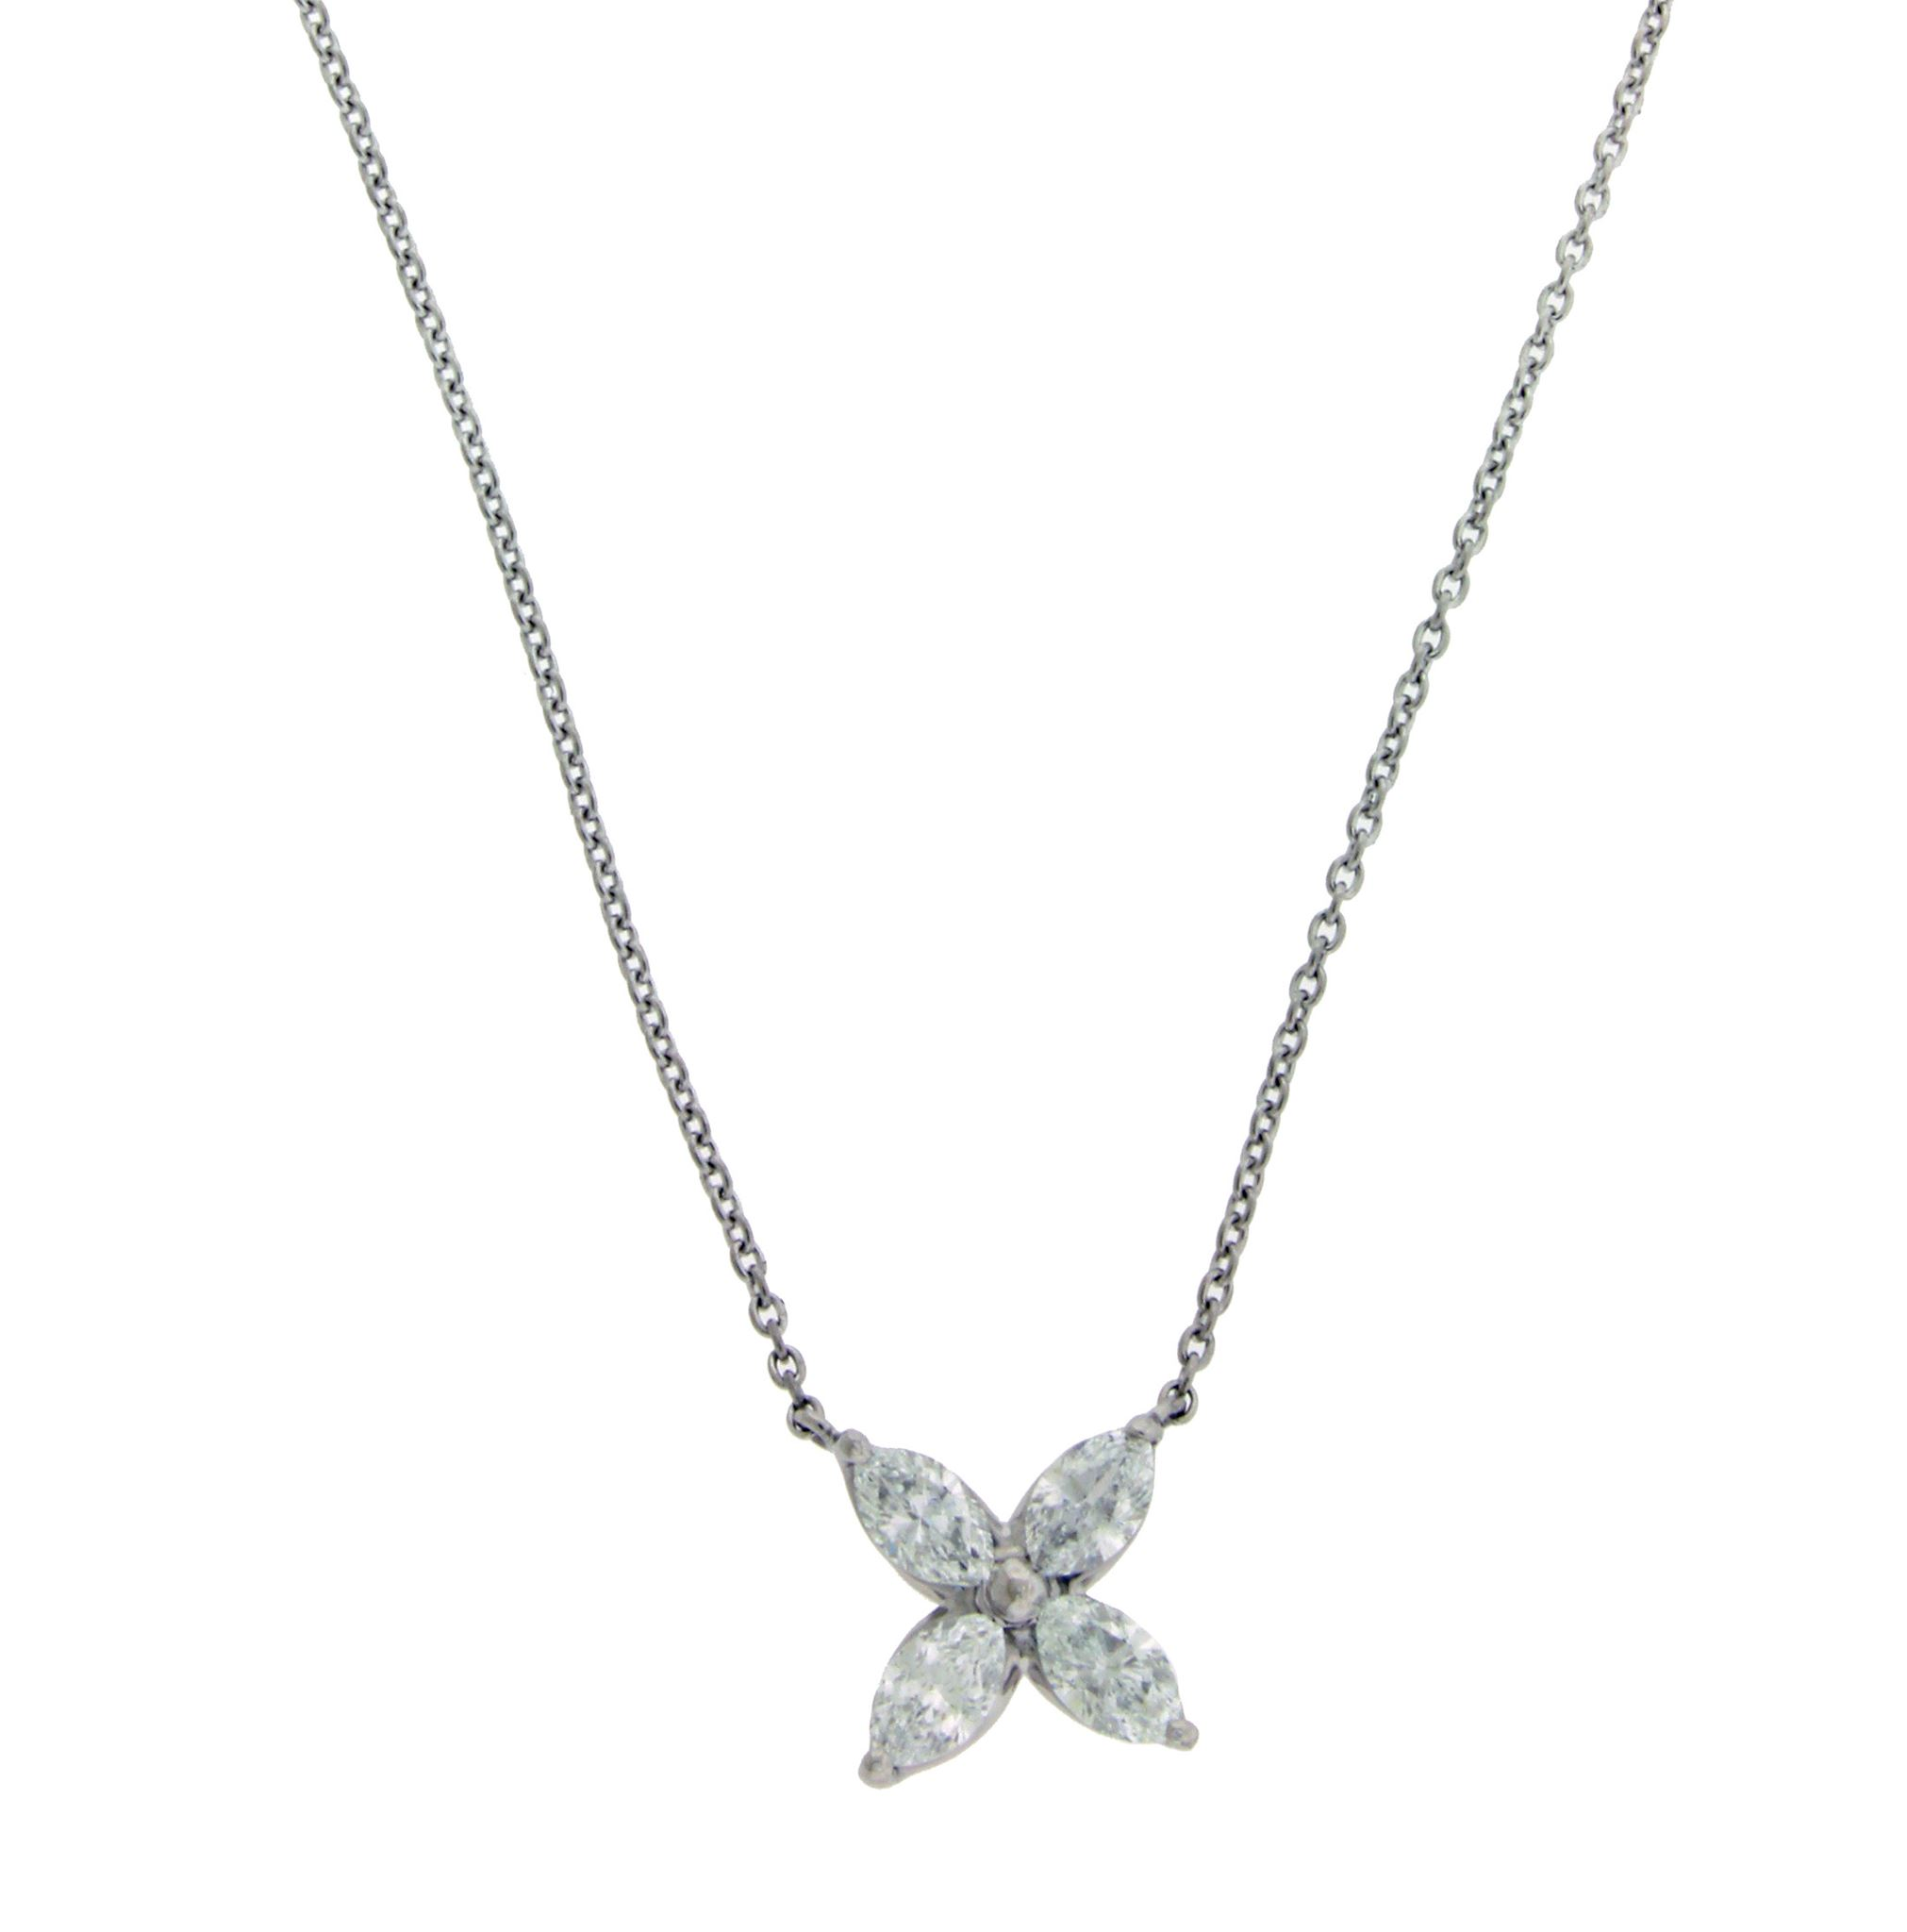 master and set necklace co tiffany id at platinum j necklaces diamond jewelry heart drop